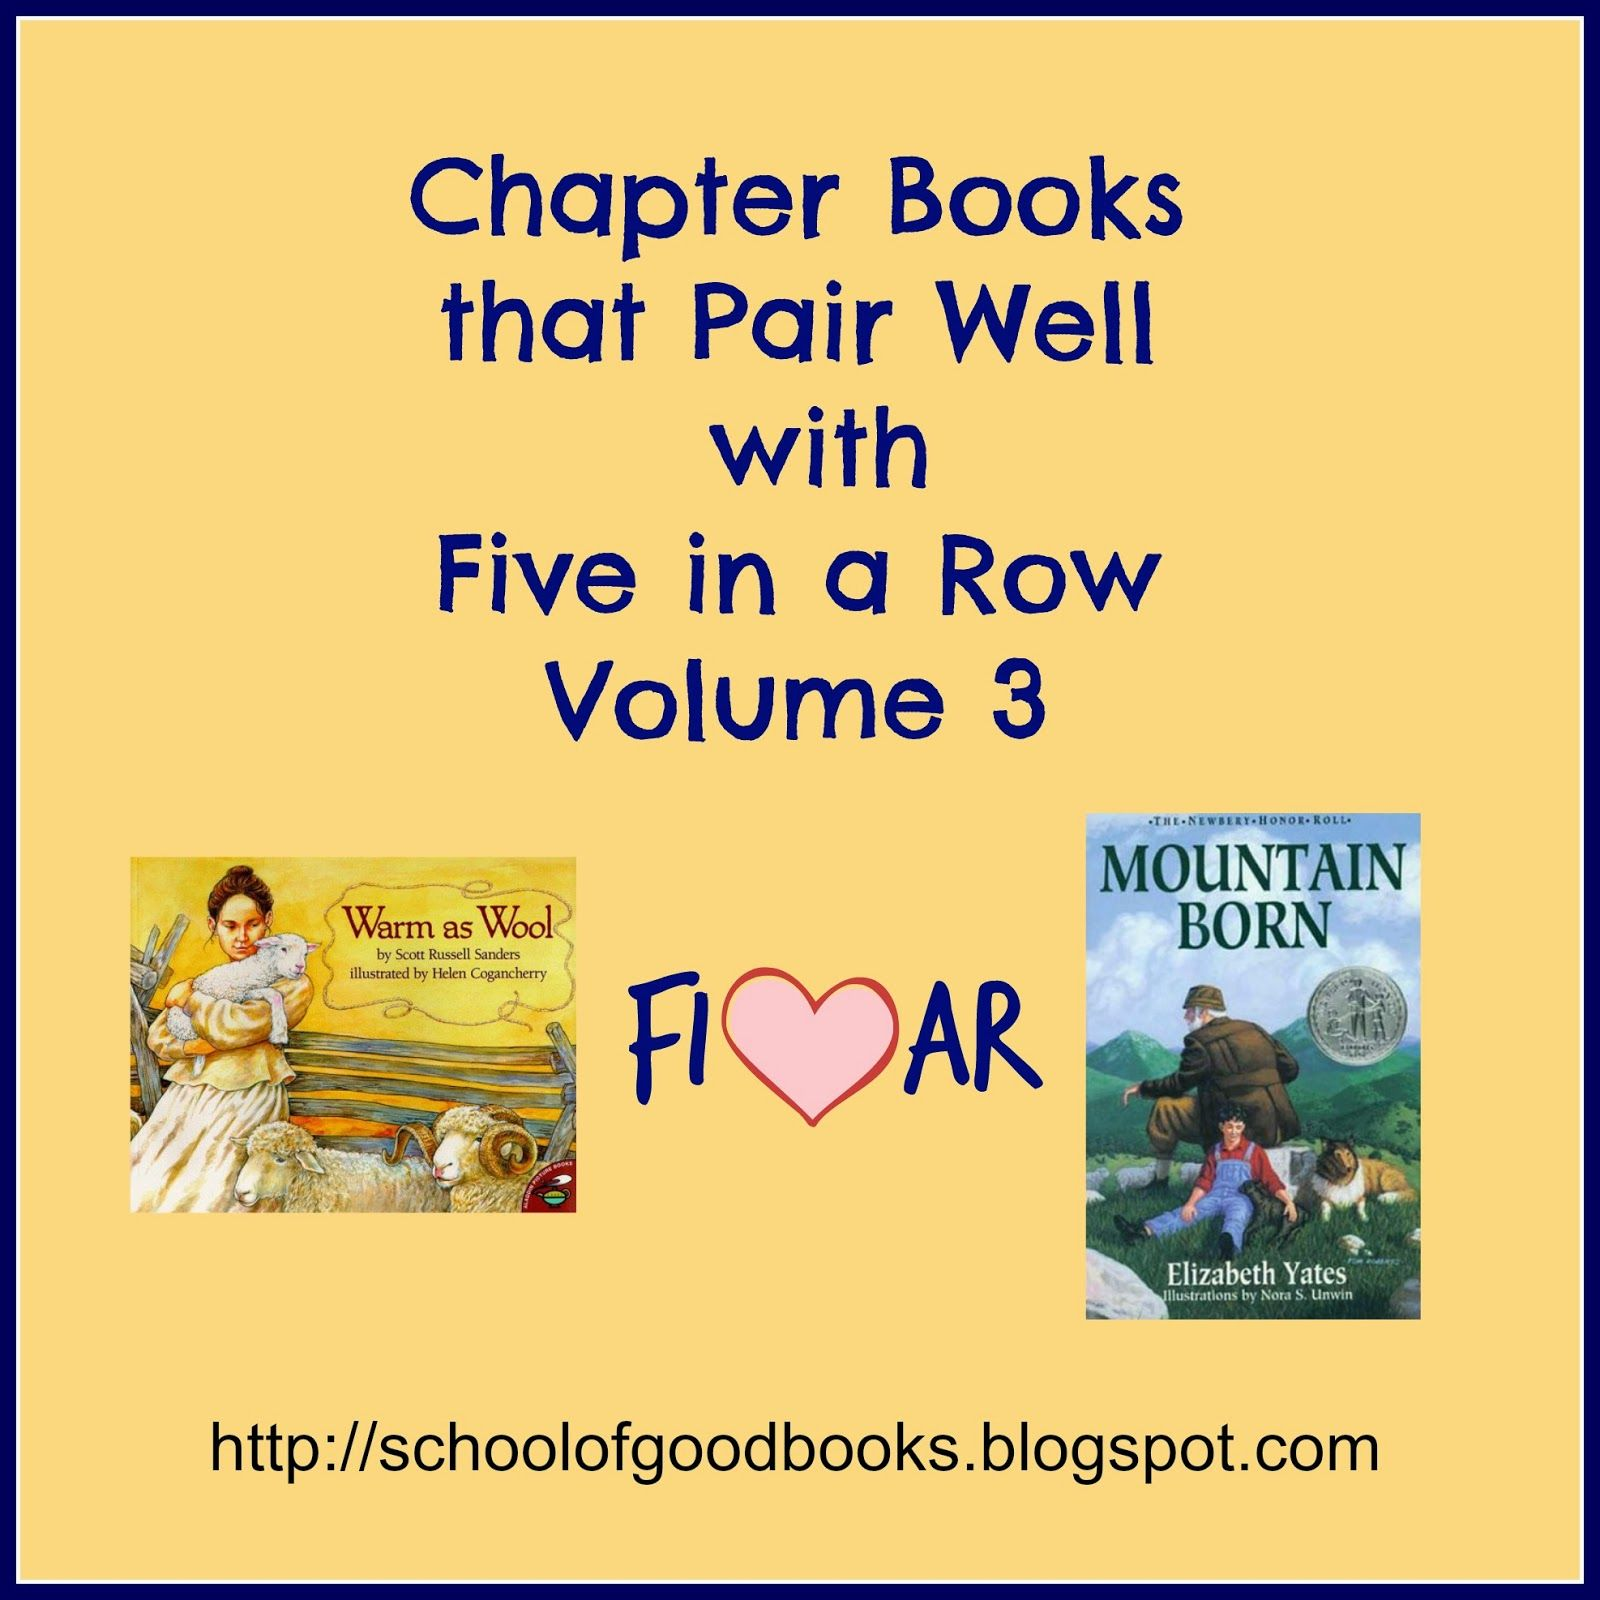 School Of Good Books Chapter Books That Pair Well With Five In A